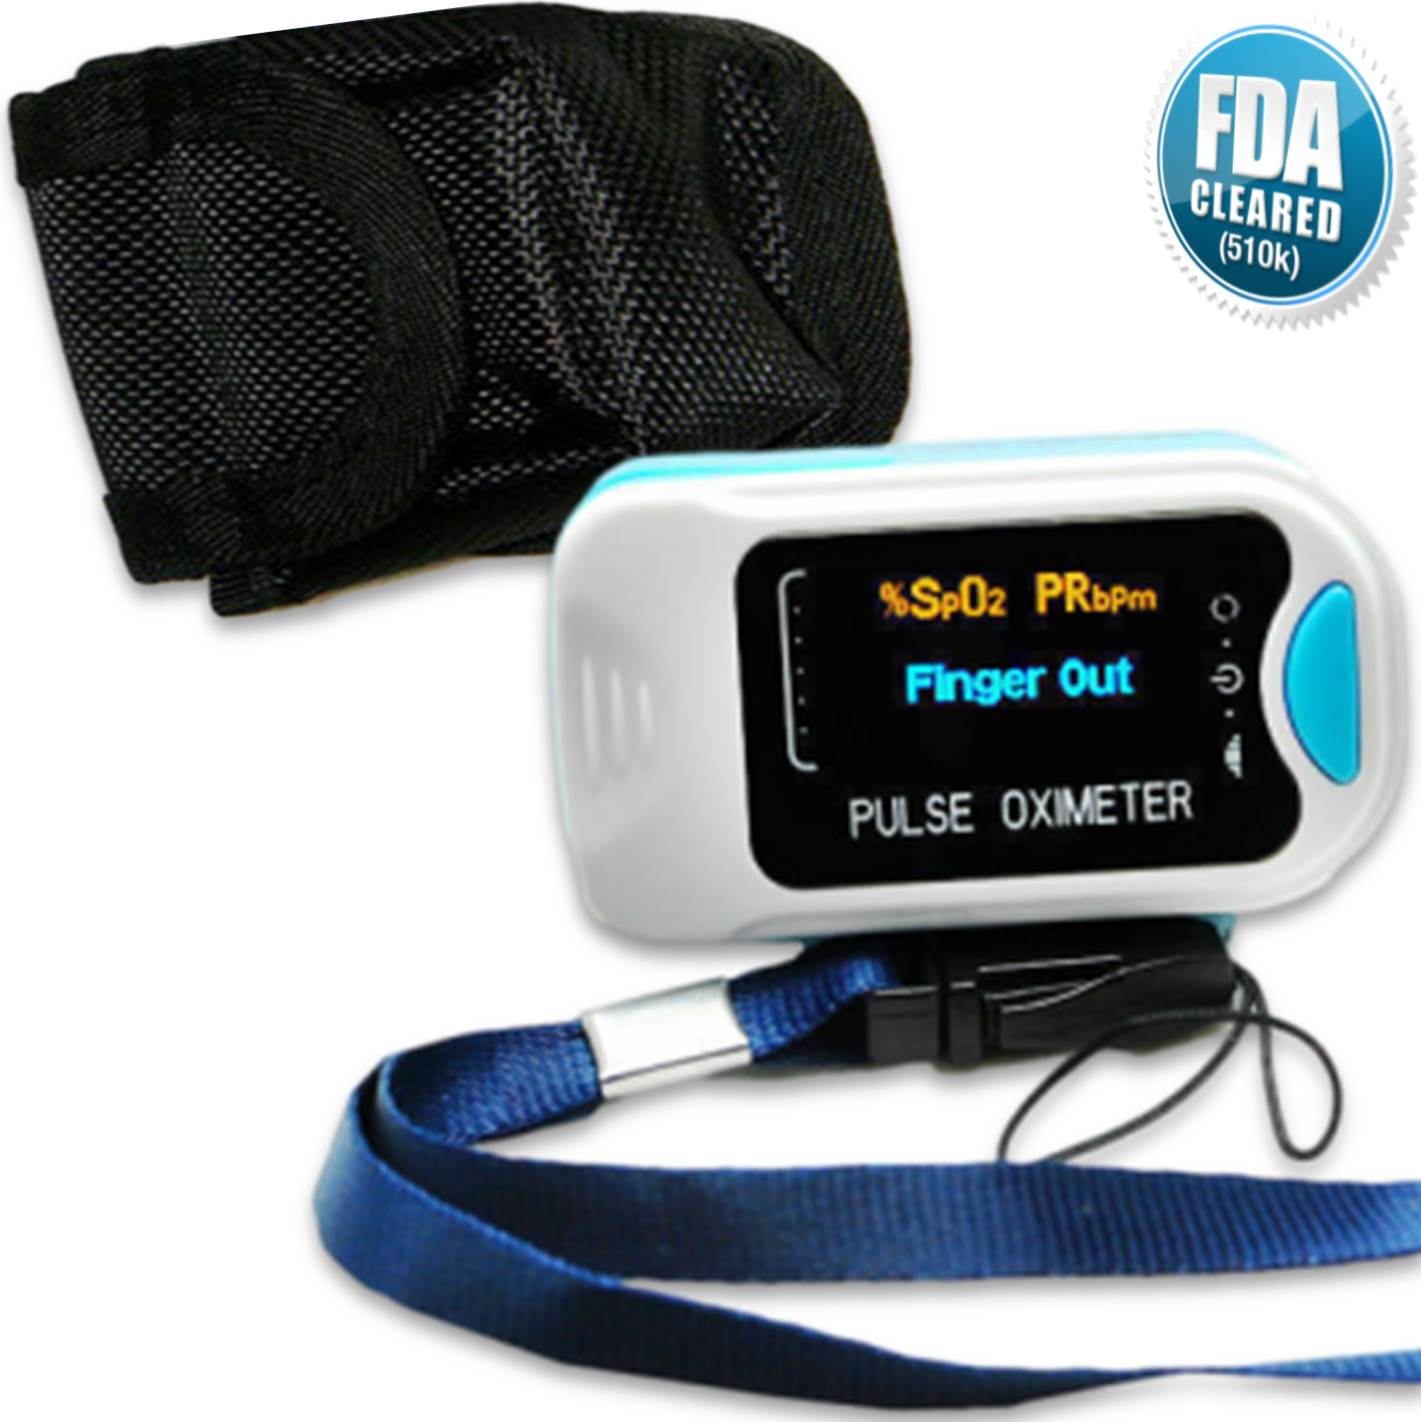 Our fda approved pulse oximeter comes with a handy lanyard to help you ensure you don't lose it if you are on the move.  The lanyard is easy to fit – simply loop it through the slot at the end.